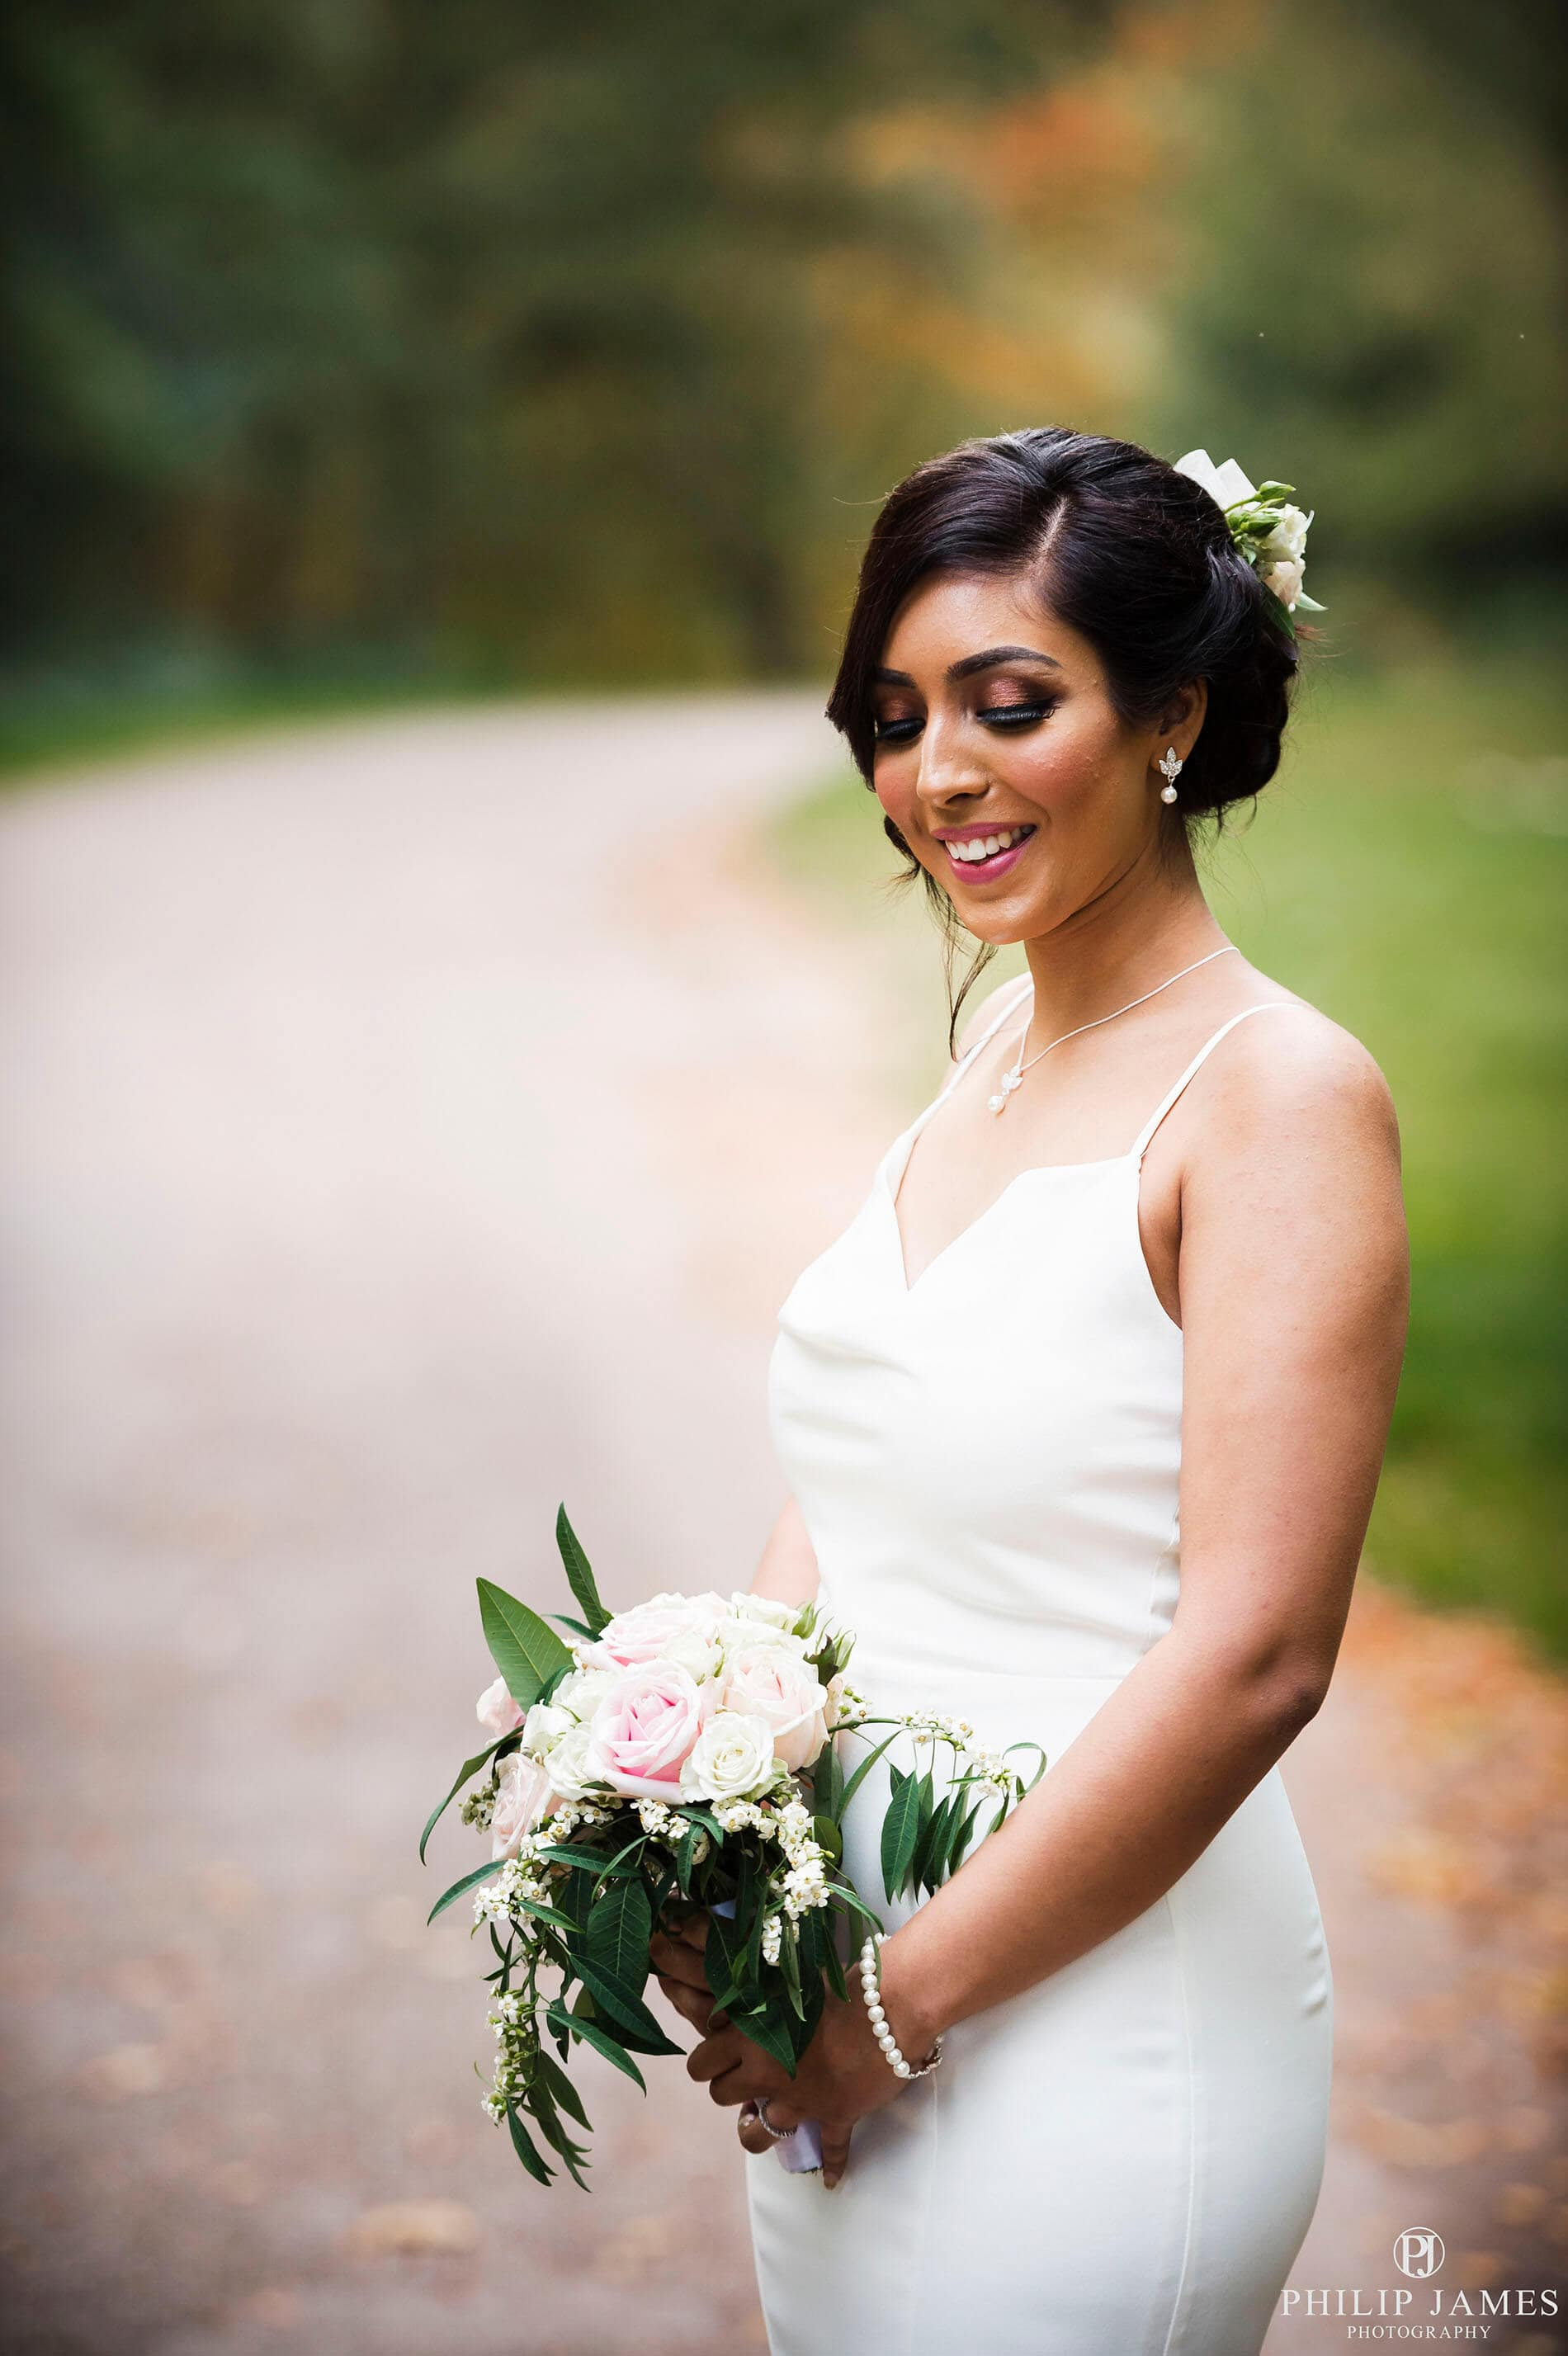 wedding photographer Mere Green | Philip James Photography